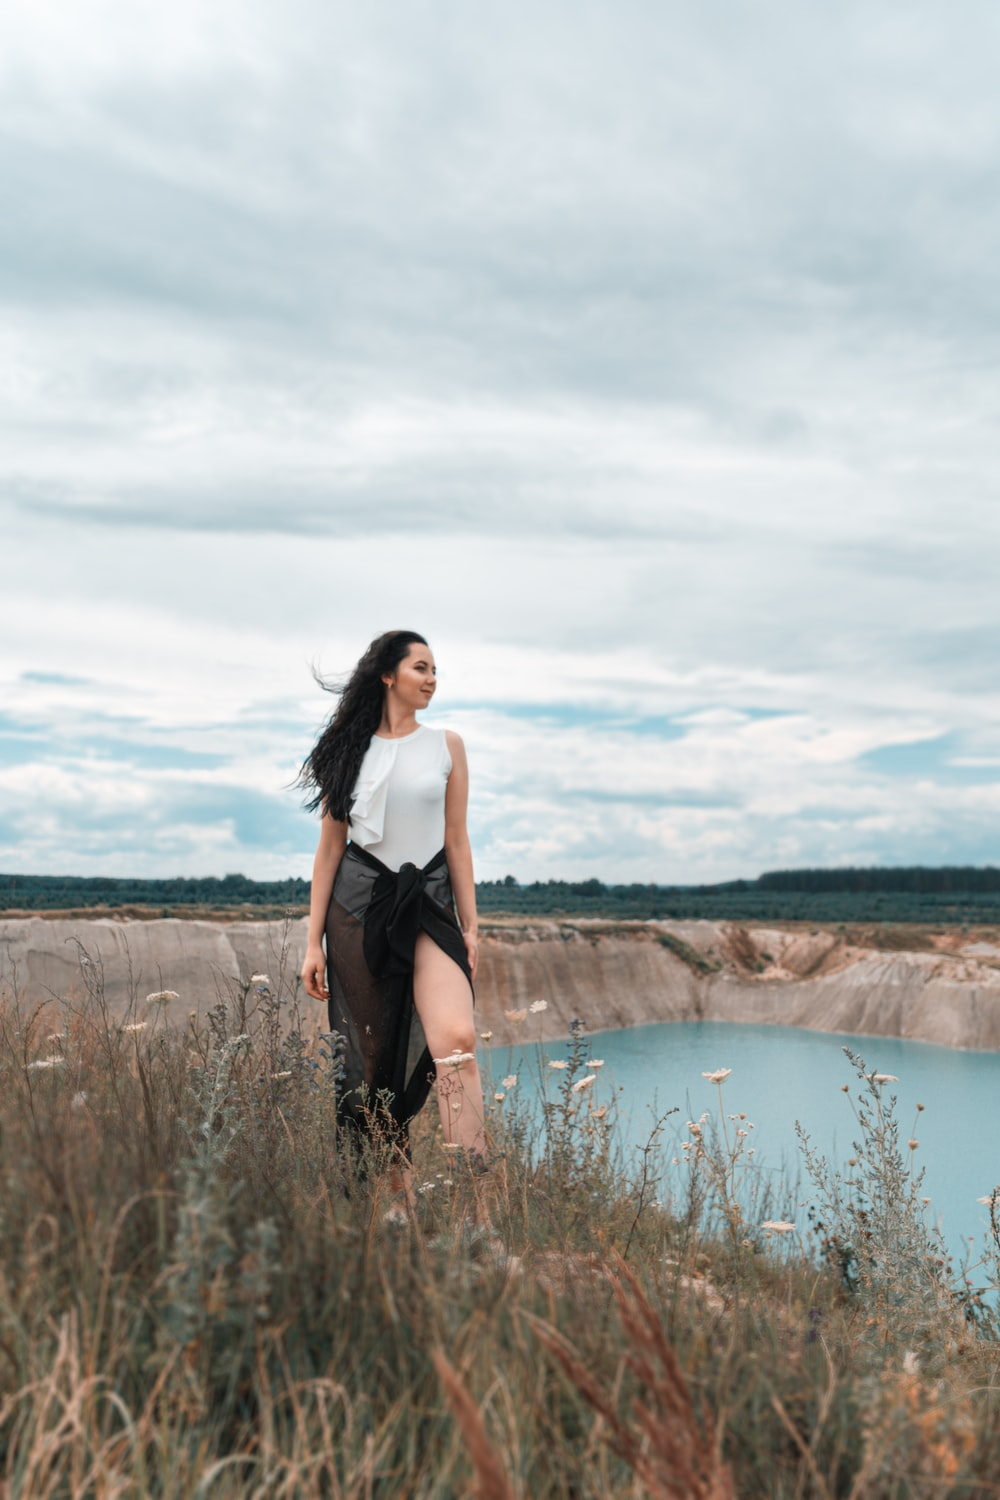 woman in black tank top standing on brown grass field near lake during daytime